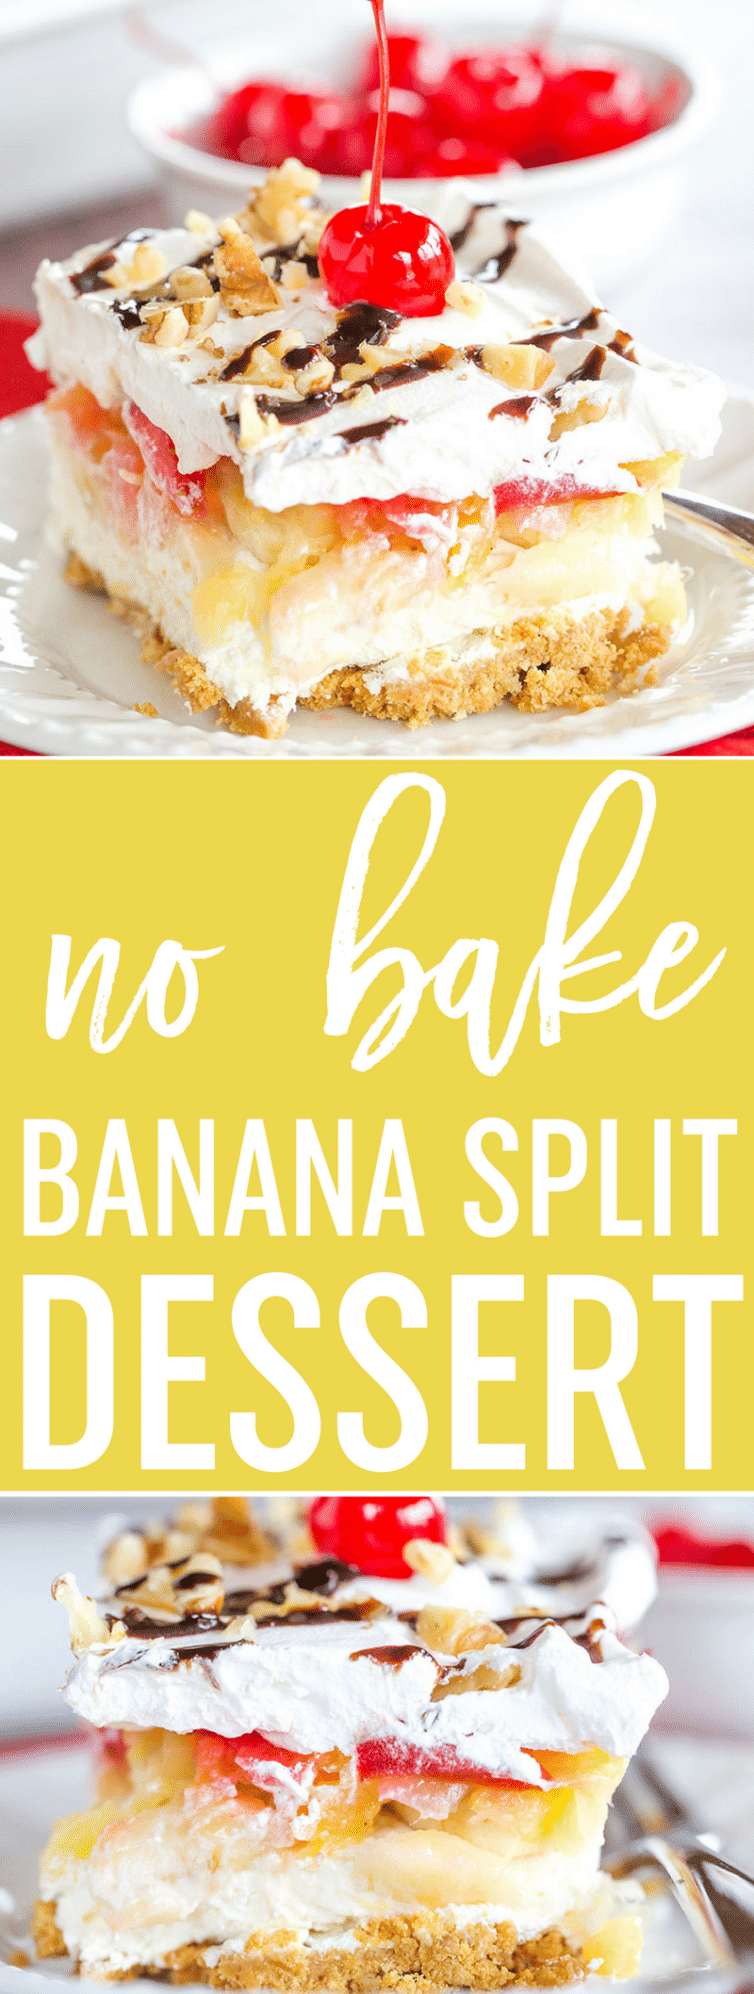 No bake banana split dessert brown eyed baker no bake banana split dessert is a classic layers of graham cracker crust cream forumfinder Choice Image